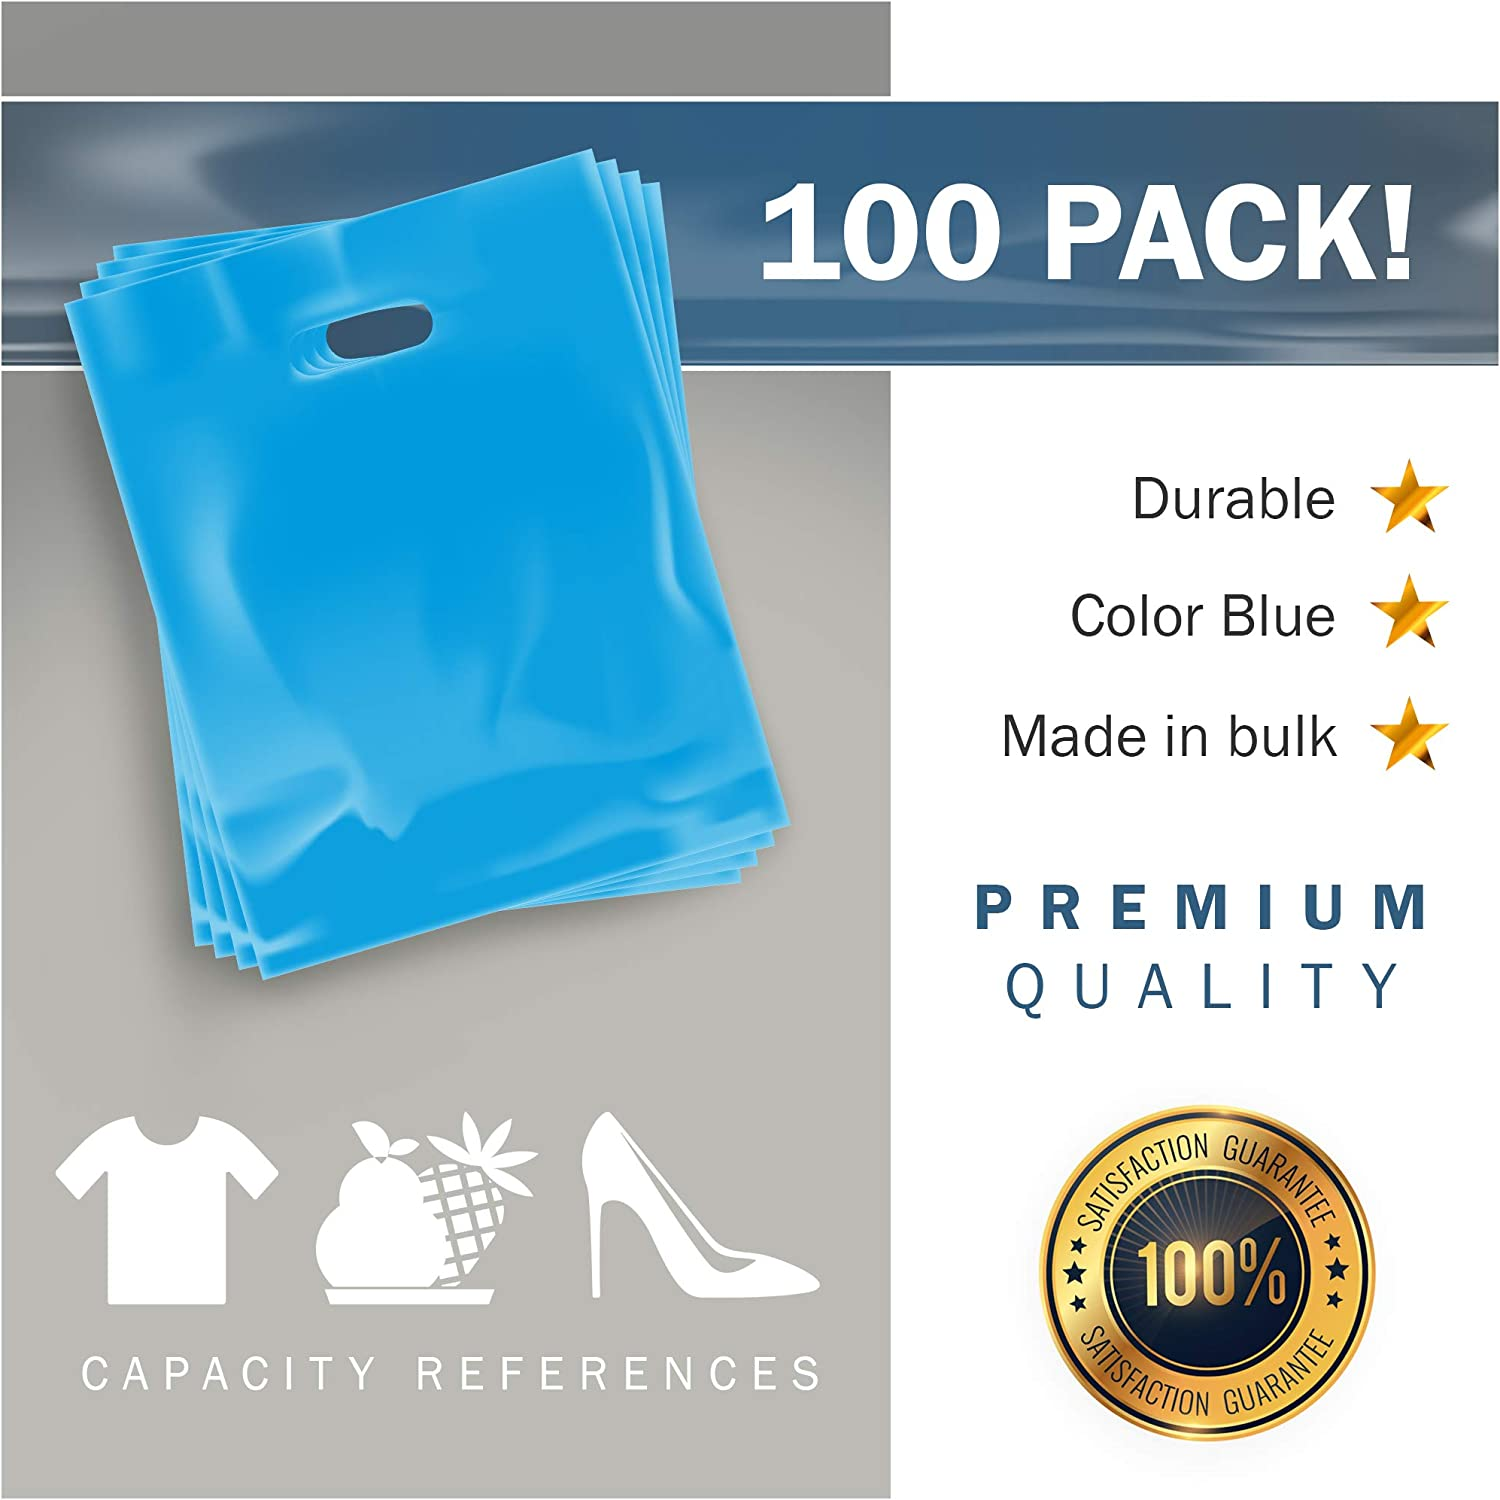 100 Pack 12 x 15 with 1.5 mil Thick Party Favors Die Cut Handles Children Parties Color Blue Blue Merchandise Plastic Shopping Bags 100/% Recyclable Perfect for Retail Birthdays